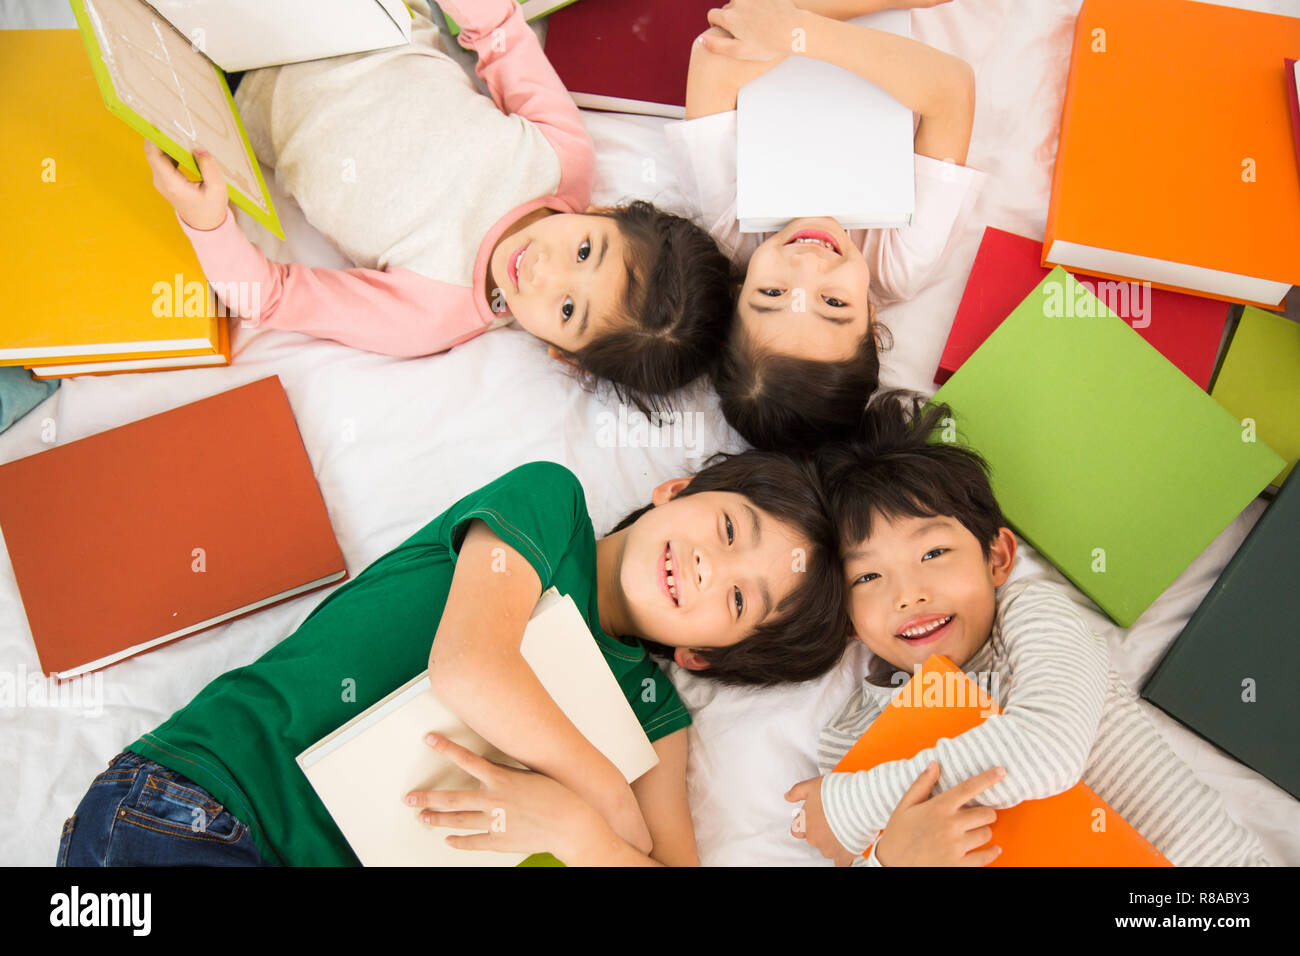 Young Students Lying On Their Backs With Piles Of Books - Stock Image